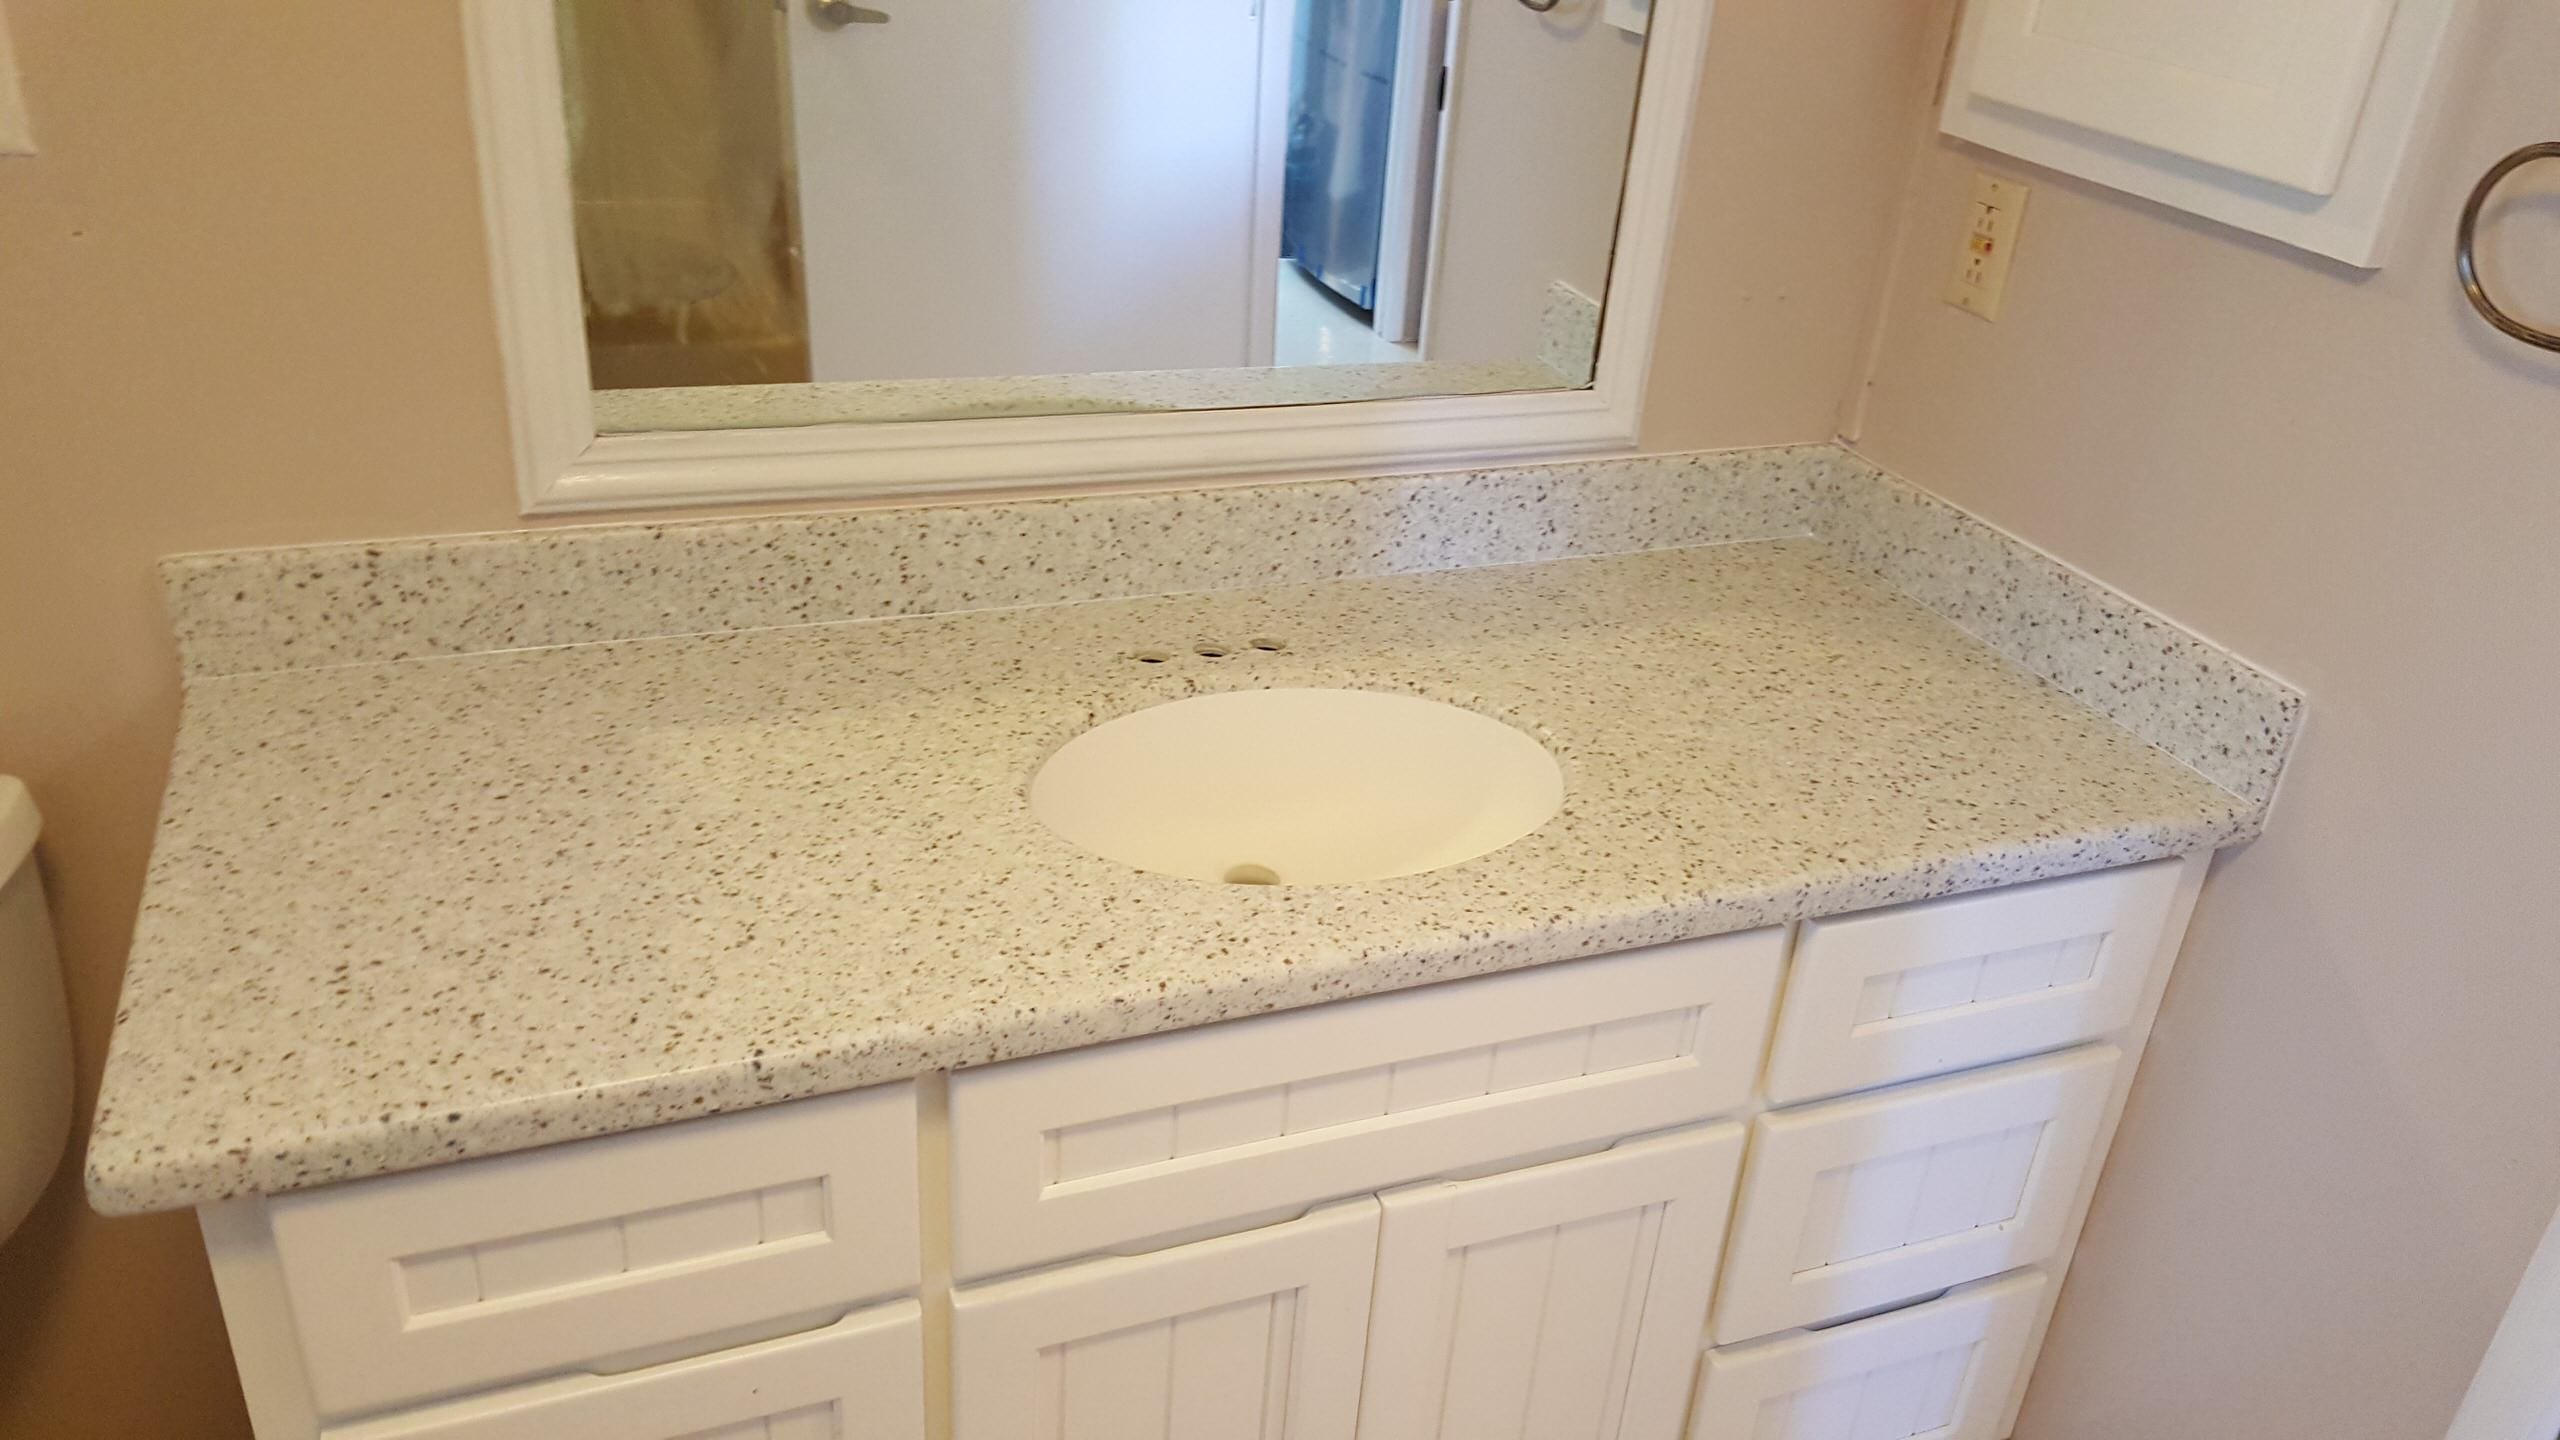 Solid Suface Countertop